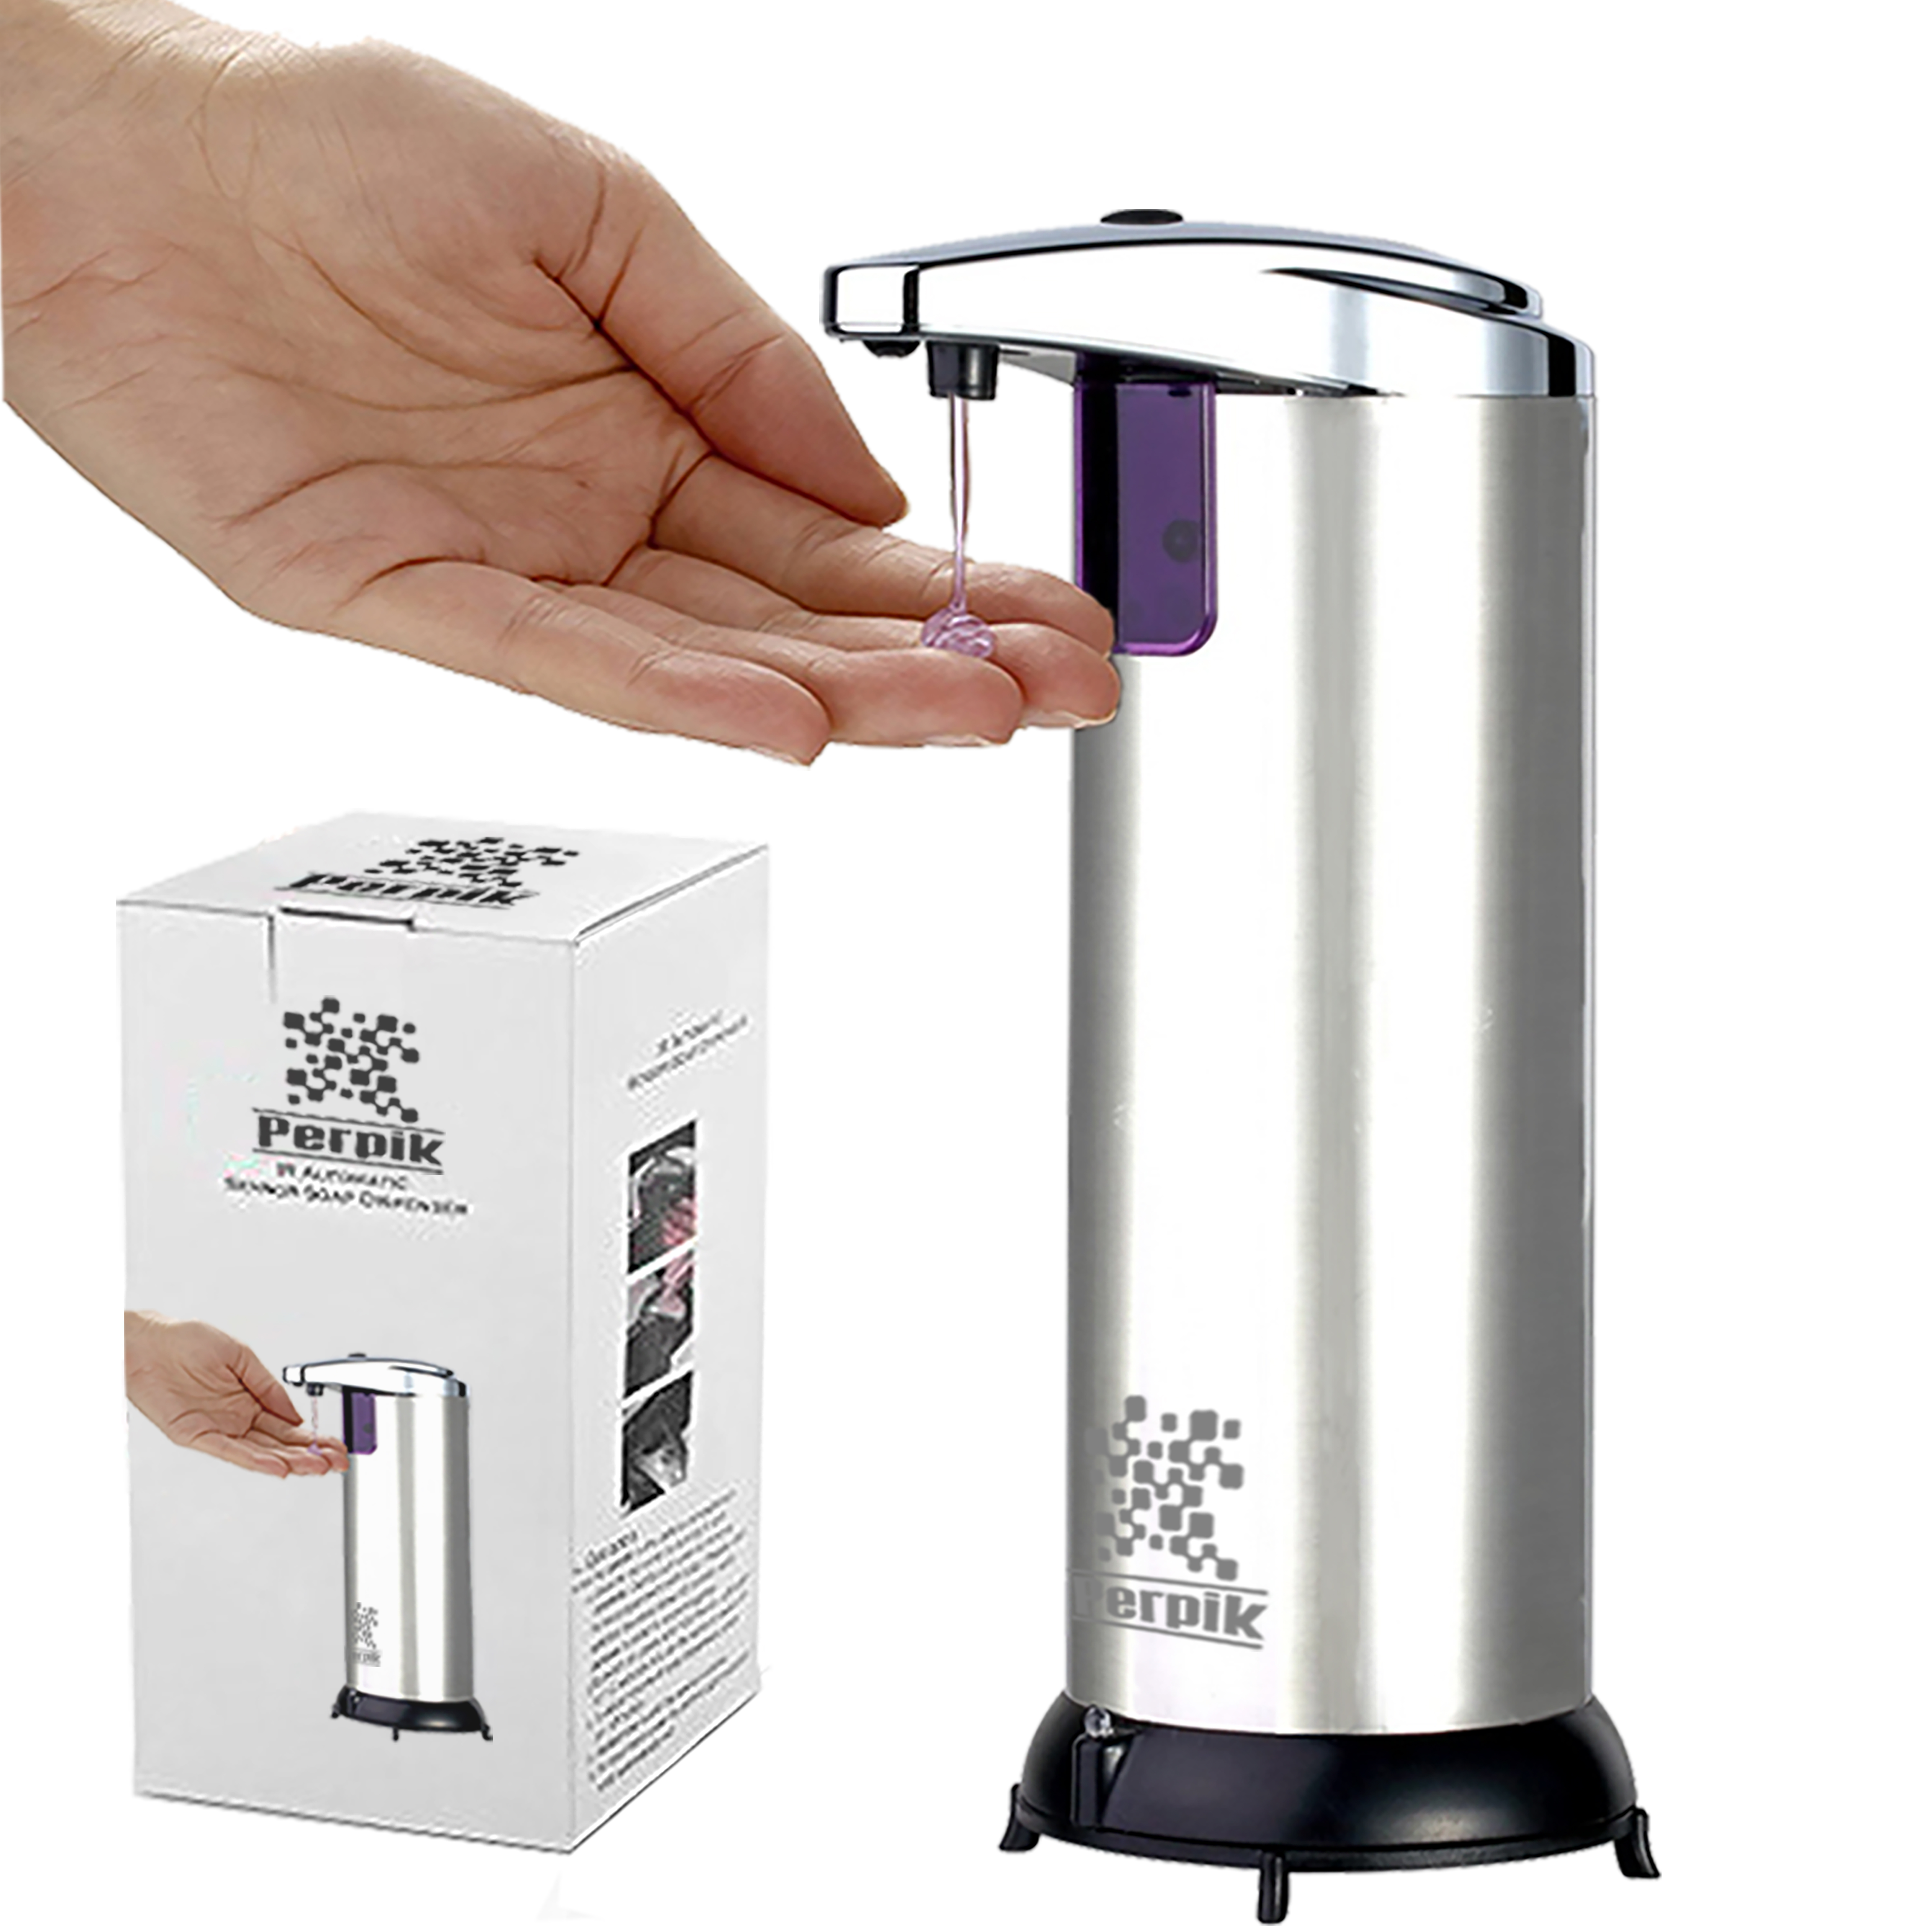 PerPik Announces Launch Of Premium Quality Touch Free Automatic Soap  Dispenser For Kitchen And Bathroom Sinks